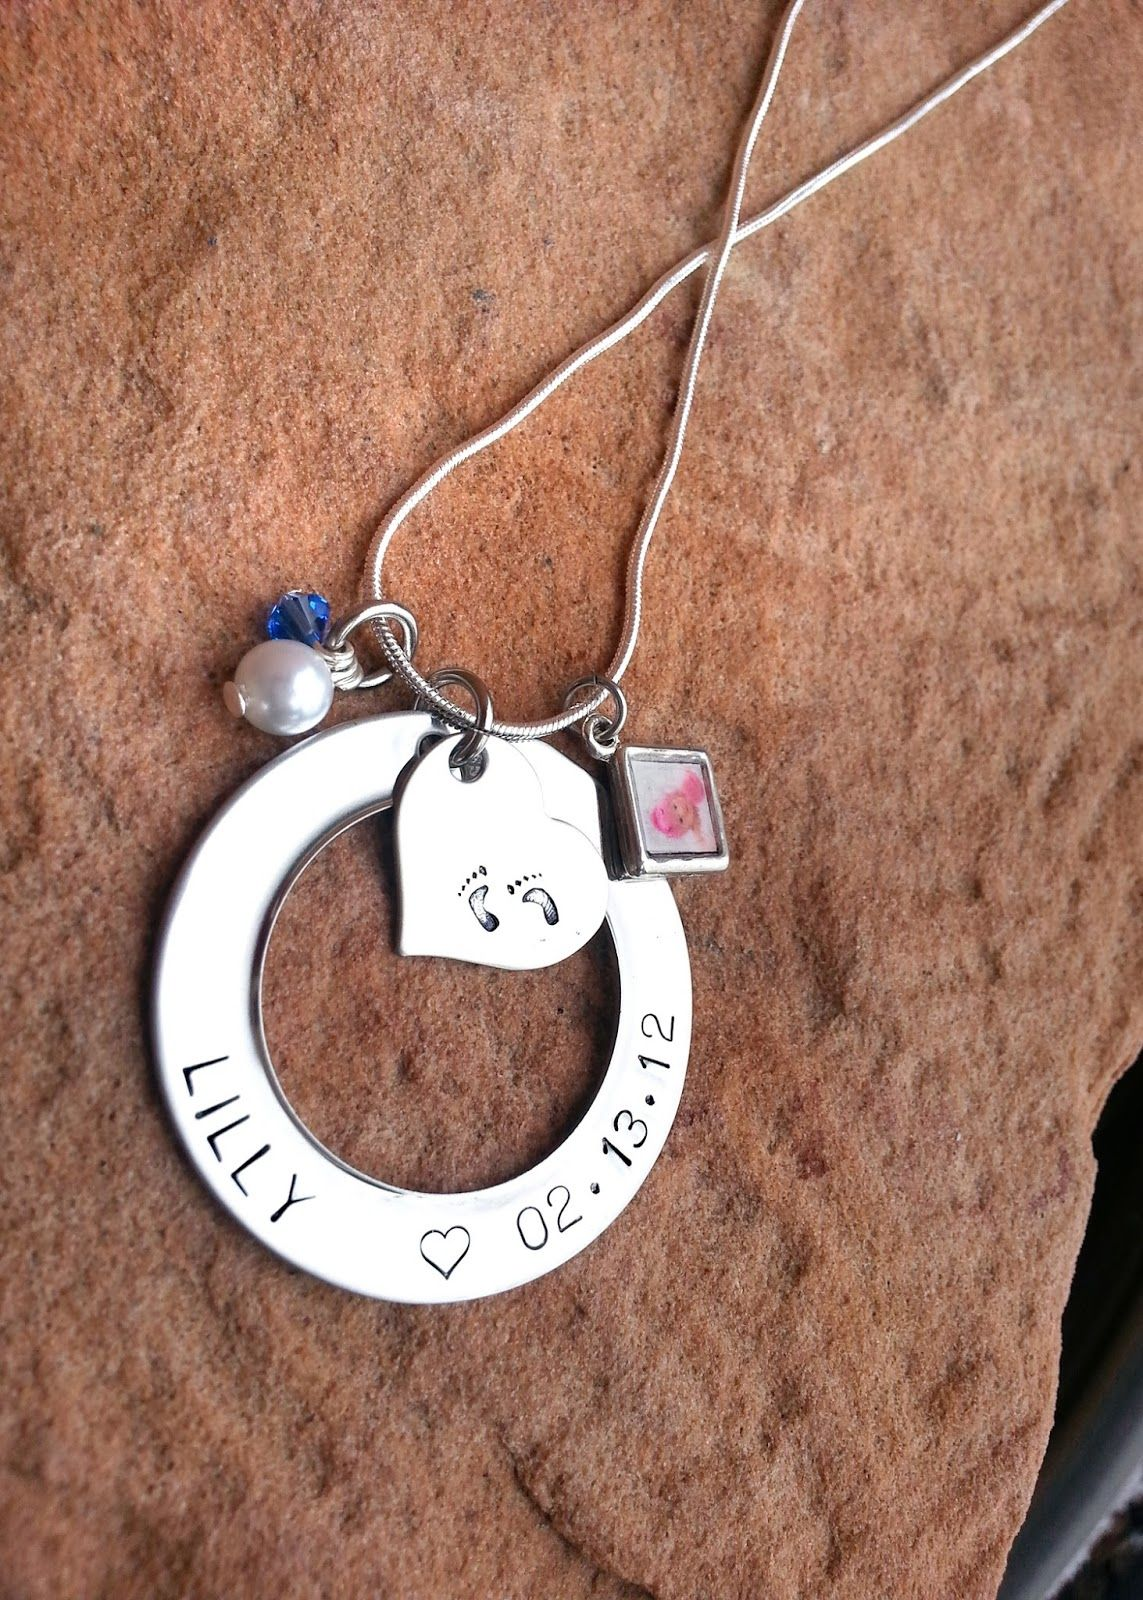 more centime personalized jewelry s gifts of name baby mother circle love custom necklace chains children for names gift